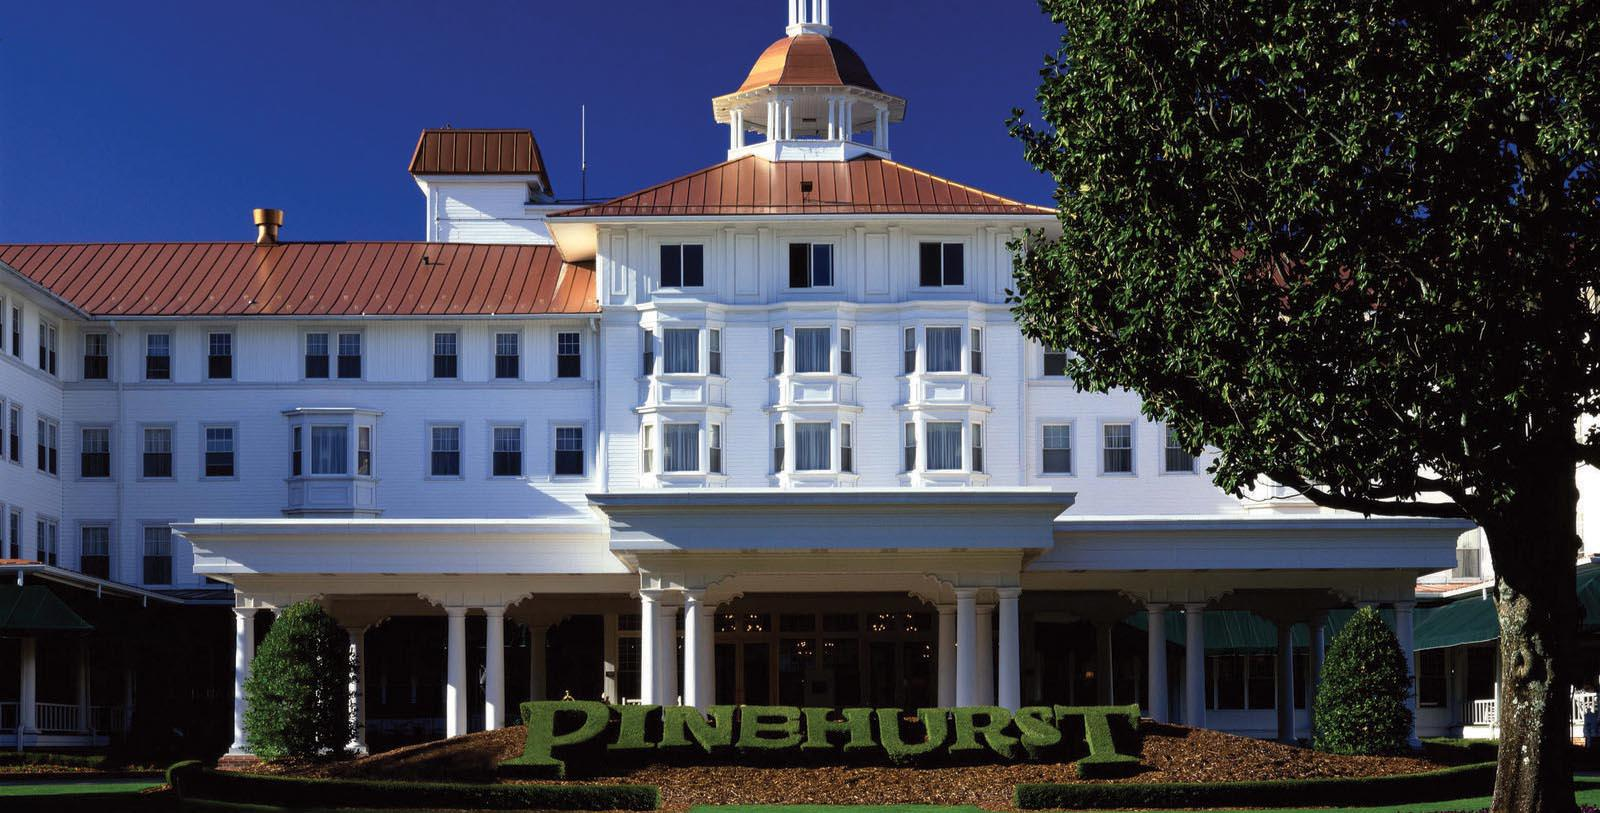 Image of Entrance to Pinehurst Resort, 1895, Member of Historic Hotels of America, in Village of Pinehurst, North Carolina, Special Offers, Discounted Rates, Families, Romantic Escape, Honeymoons, Anniversaries, Reunions